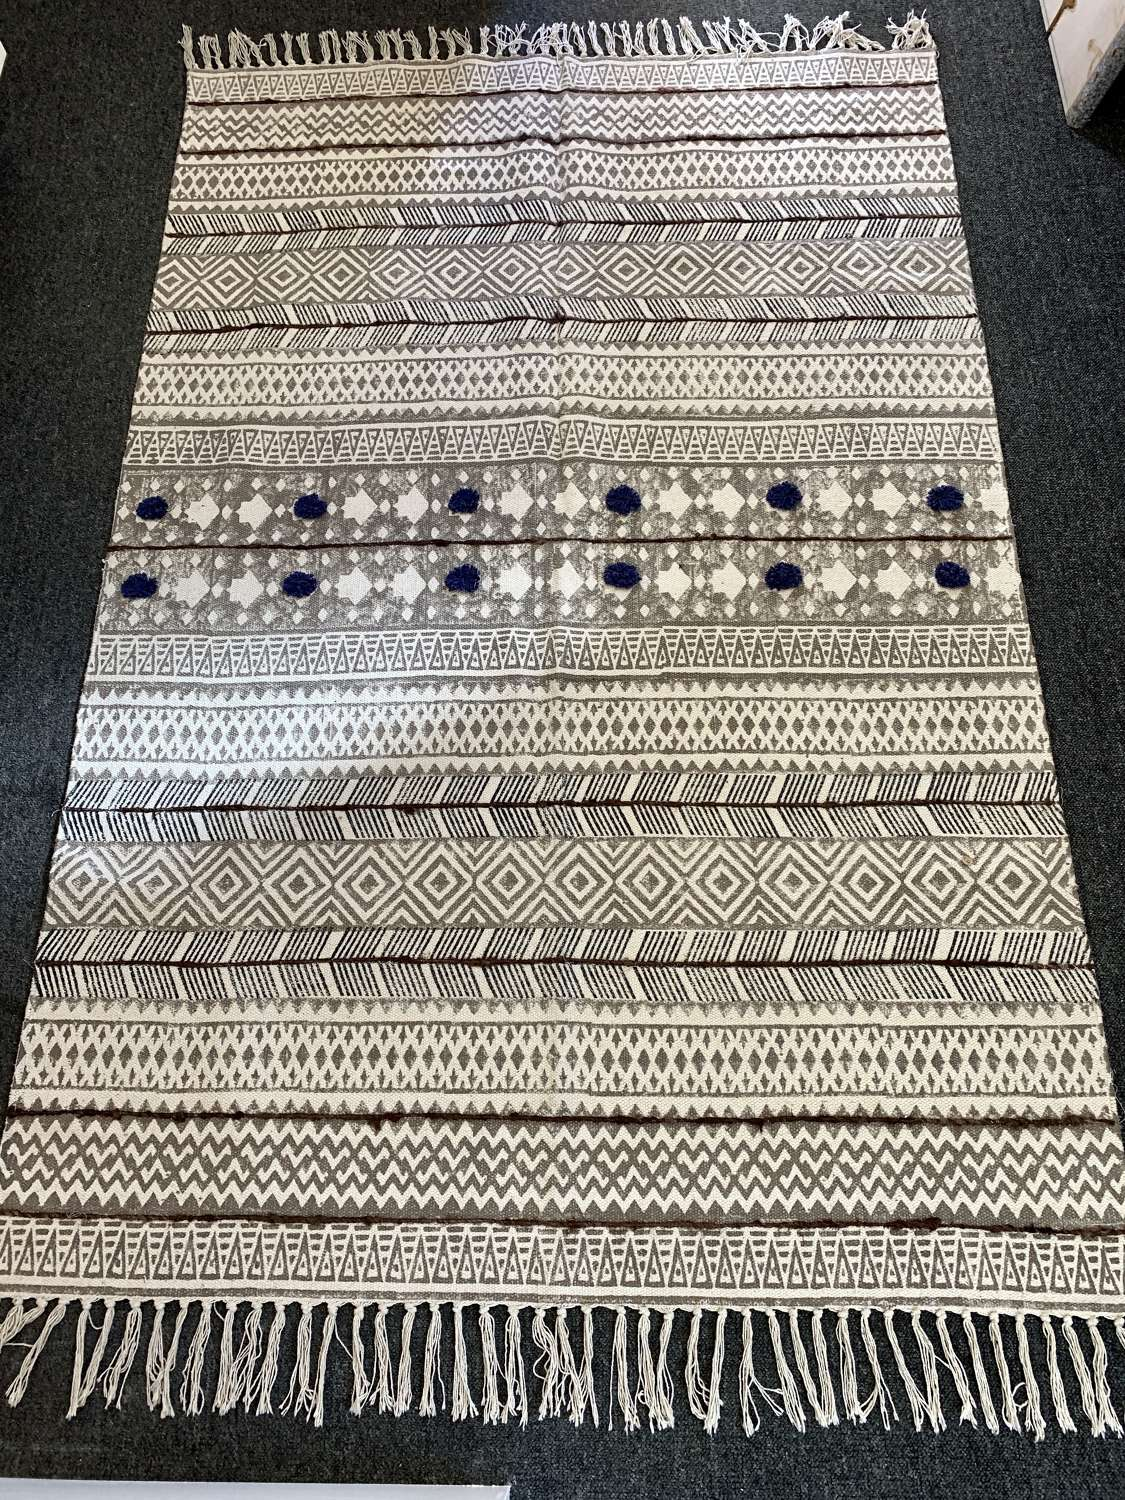 Handmade block printed rug with woollen stitching & pompoms